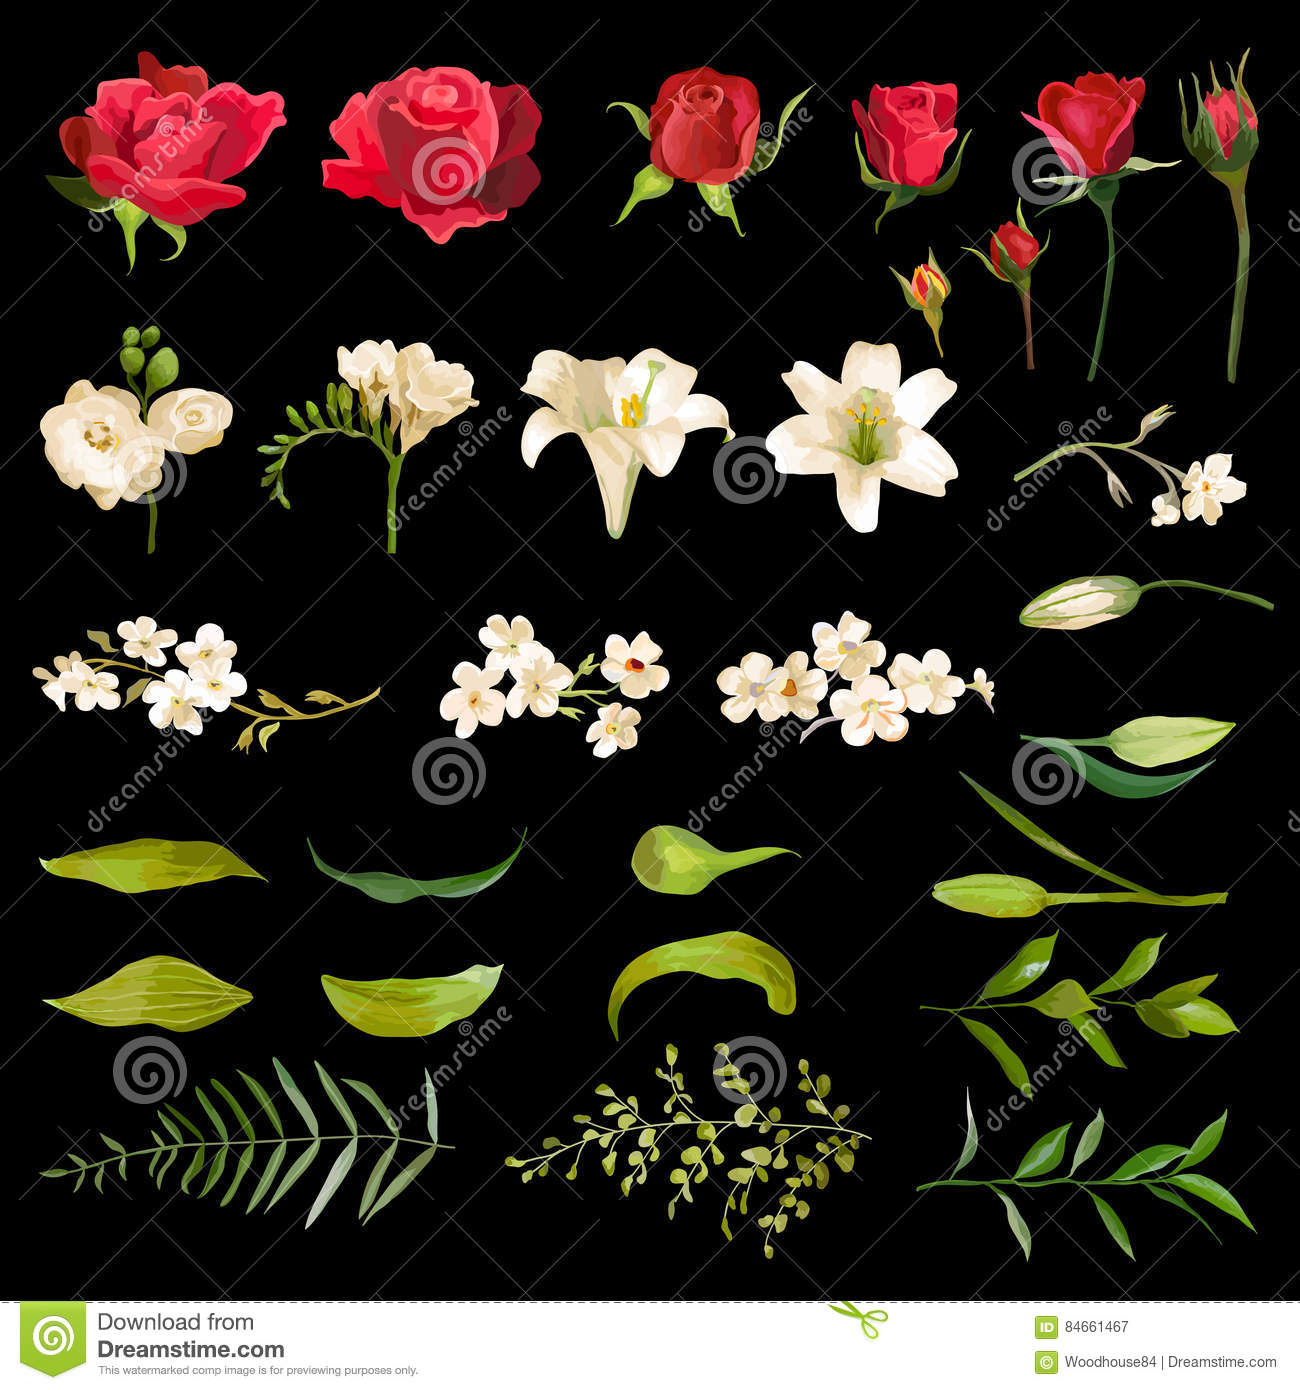 Vintage Lily And Rose Flowers Set In Watercolor Style Stock Vector